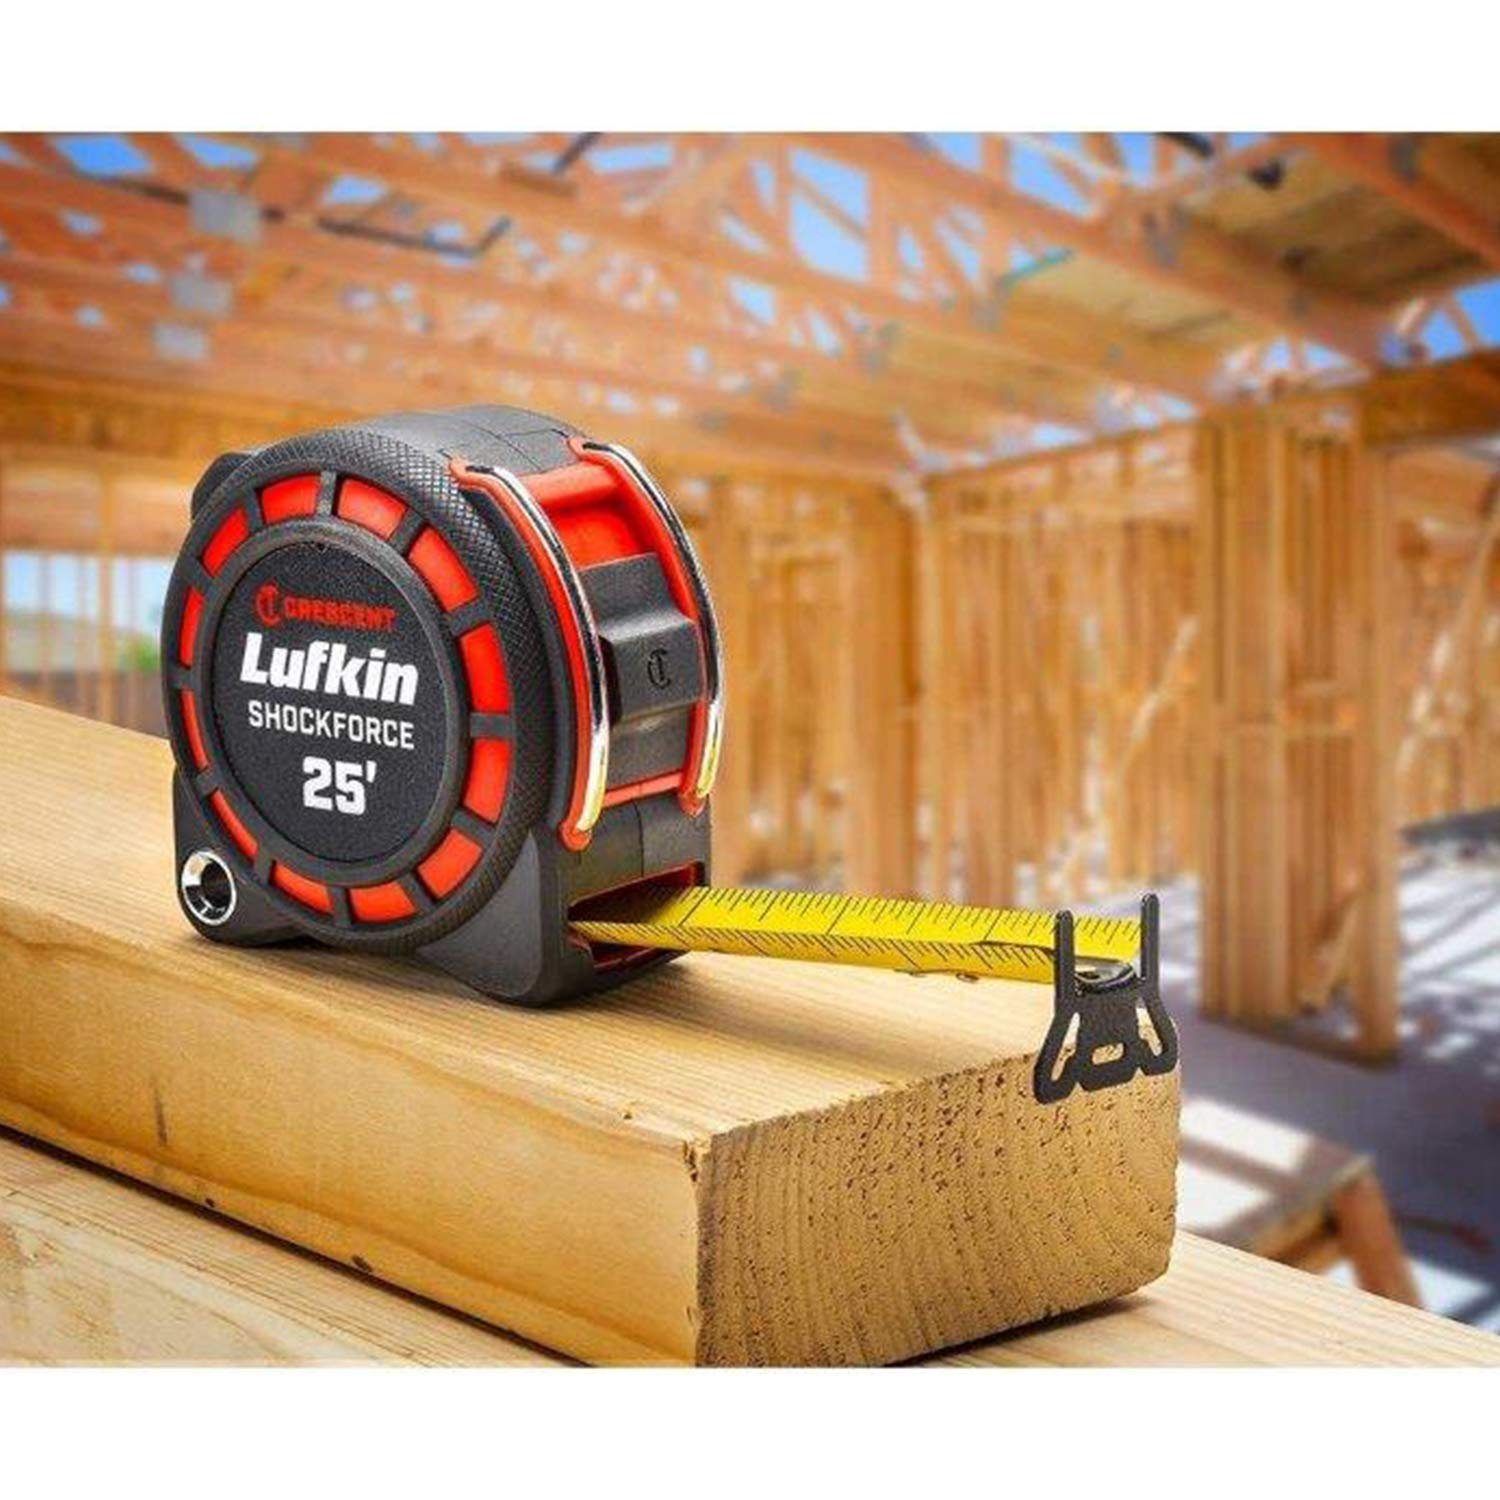 Lufkin L1125 25' Shockforce Tape Measure by toolfetch (Image #3)